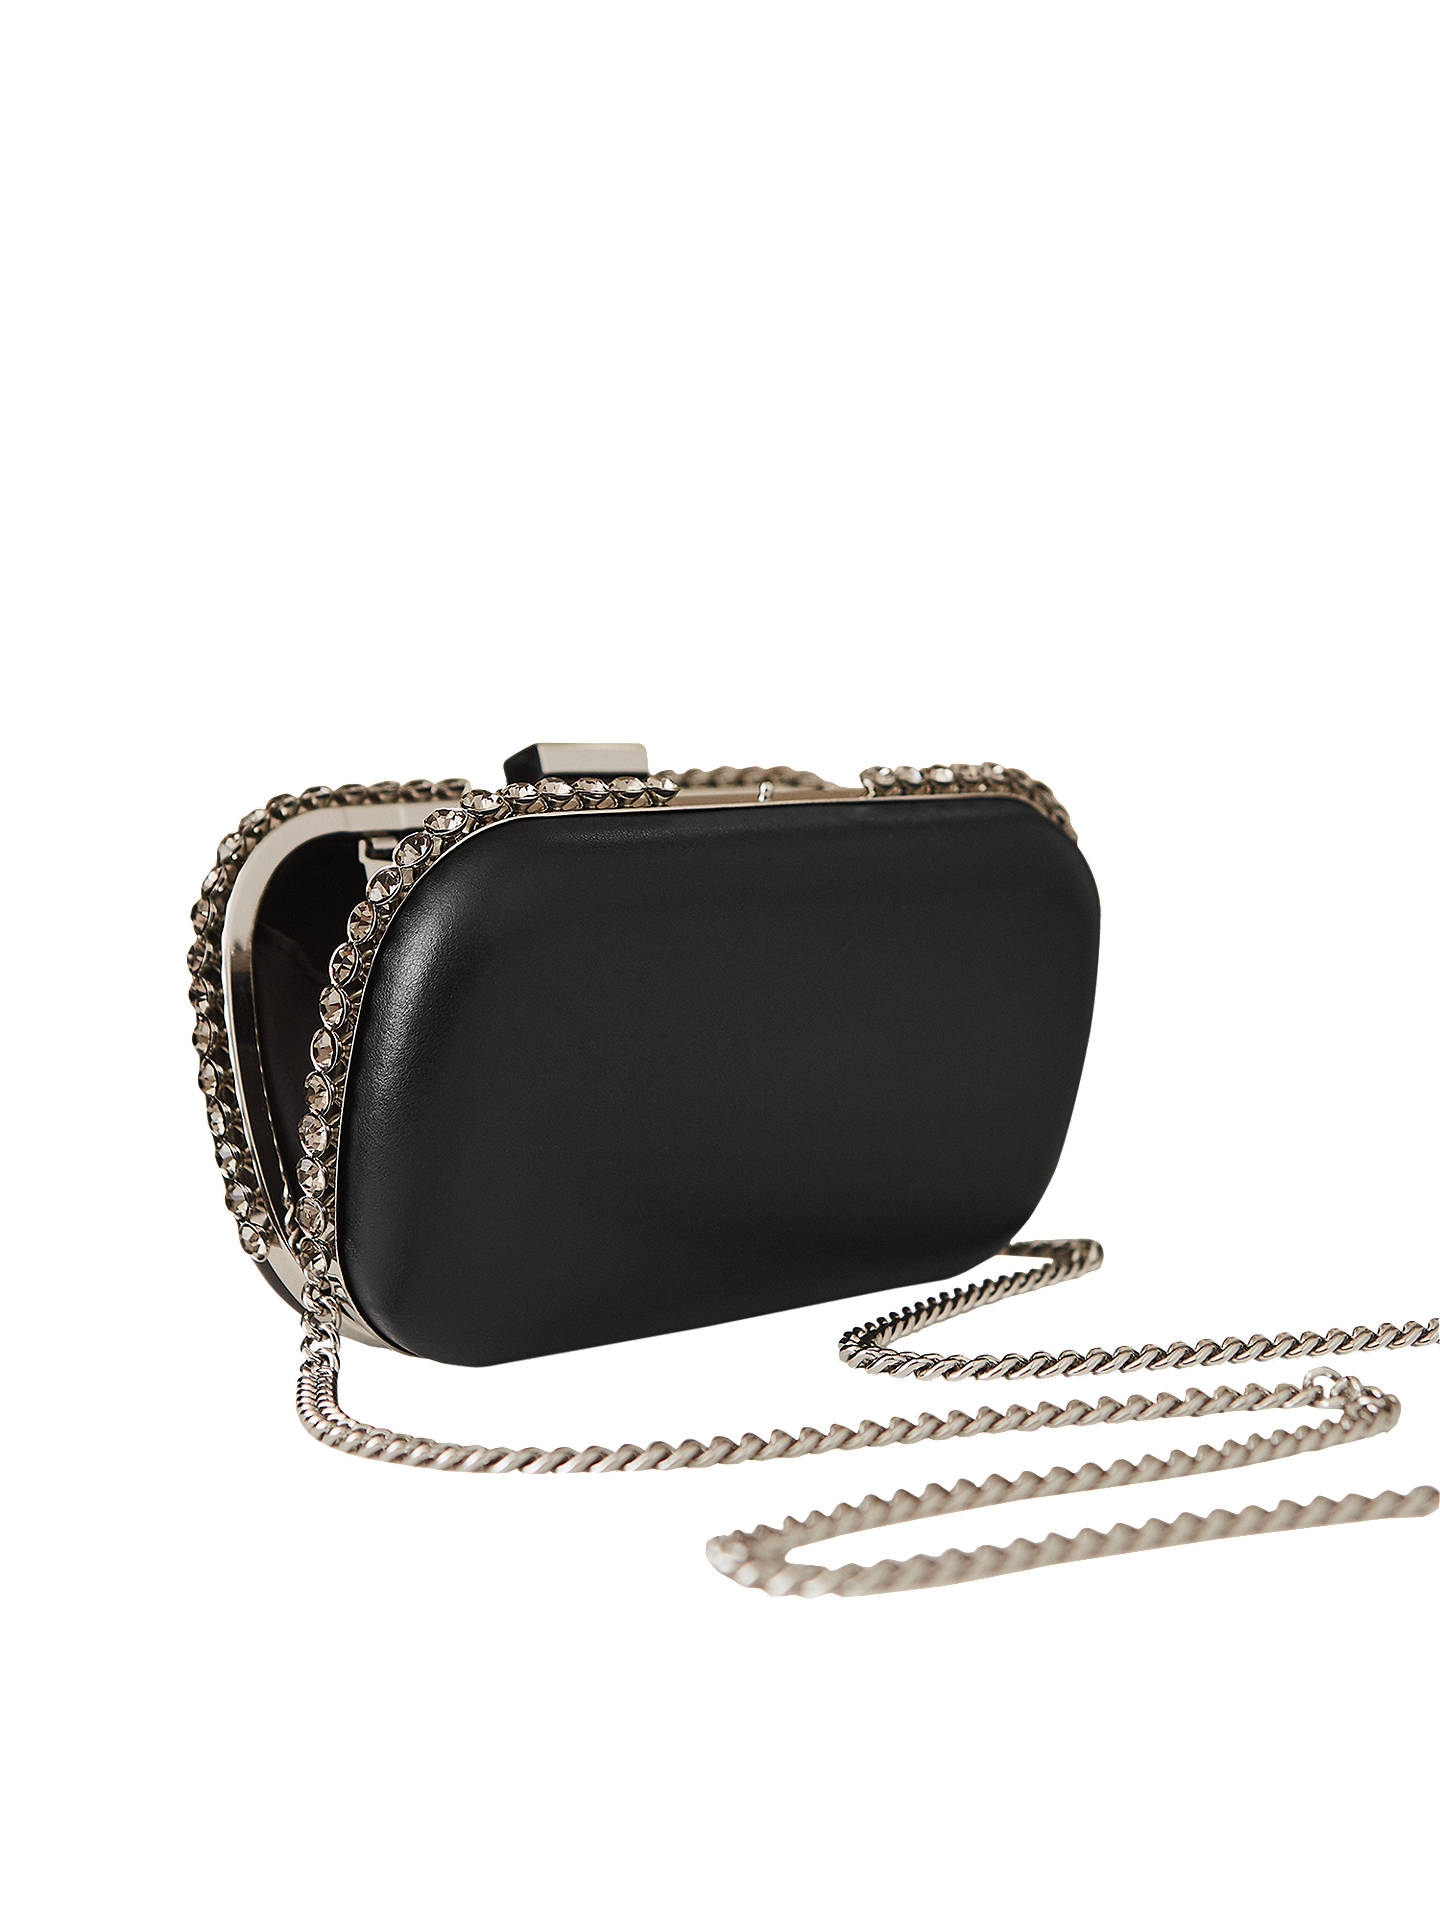 To acquire Chanel Replica lego clutch bag fall witter picture trends